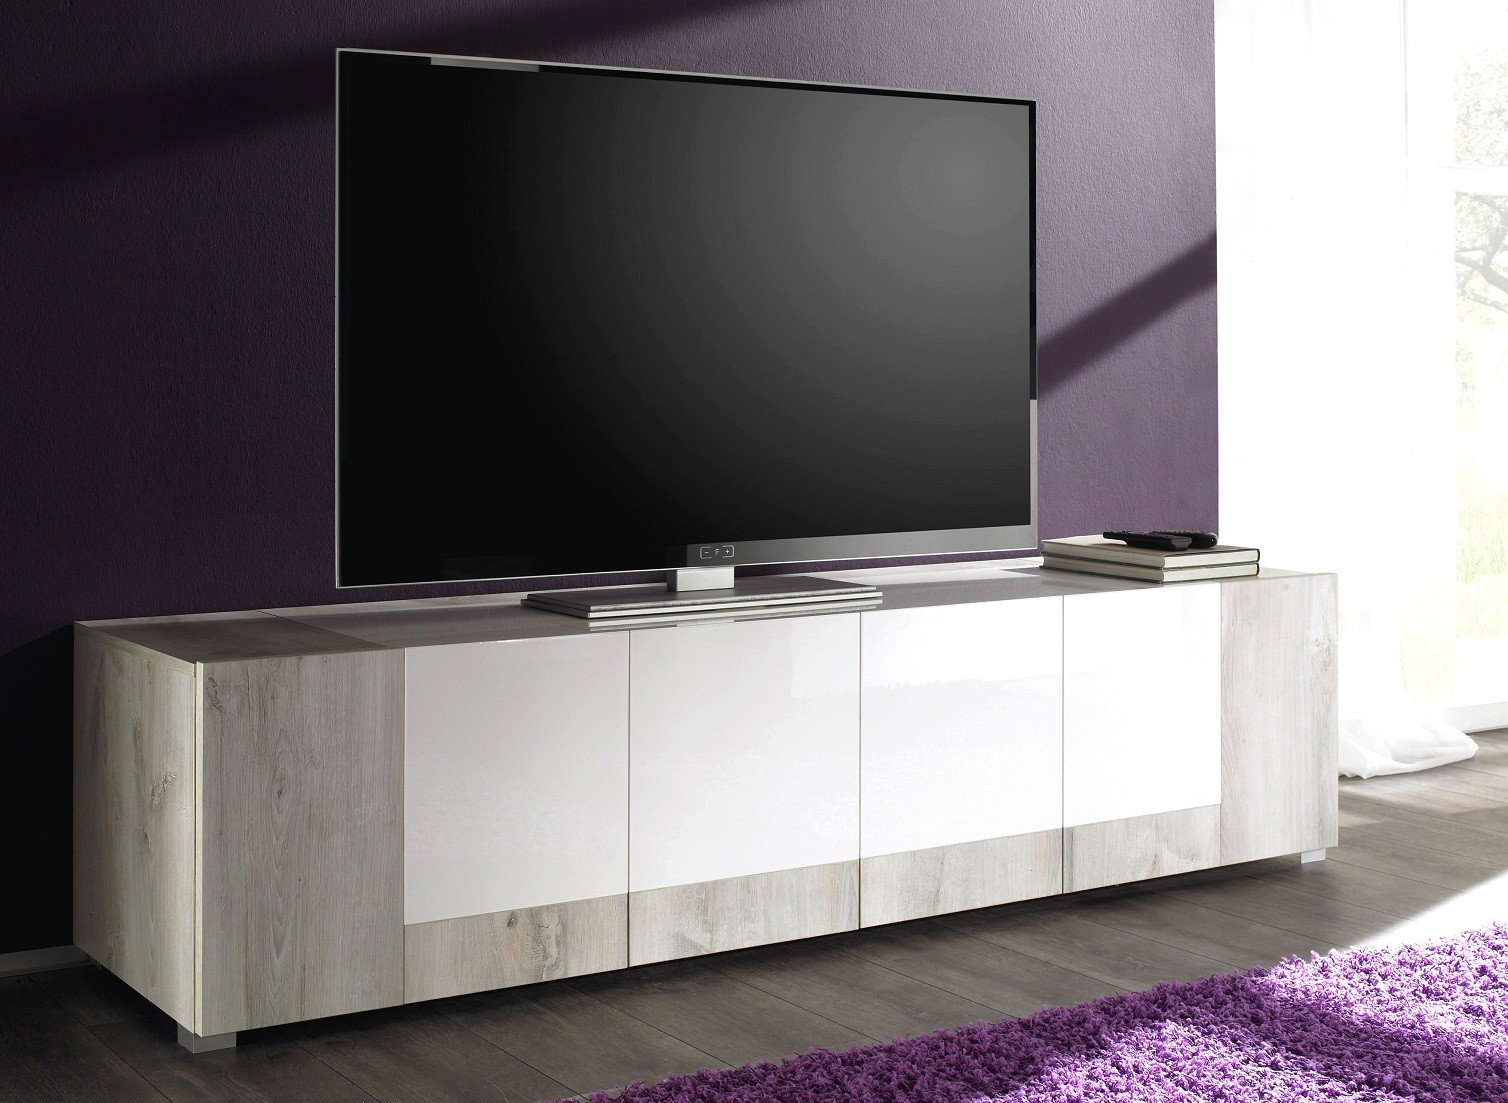 meuble tv blanc laqu et bois id es de d coration int rieure french decor. Black Bedroom Furniture Sets. Home Design Ideas